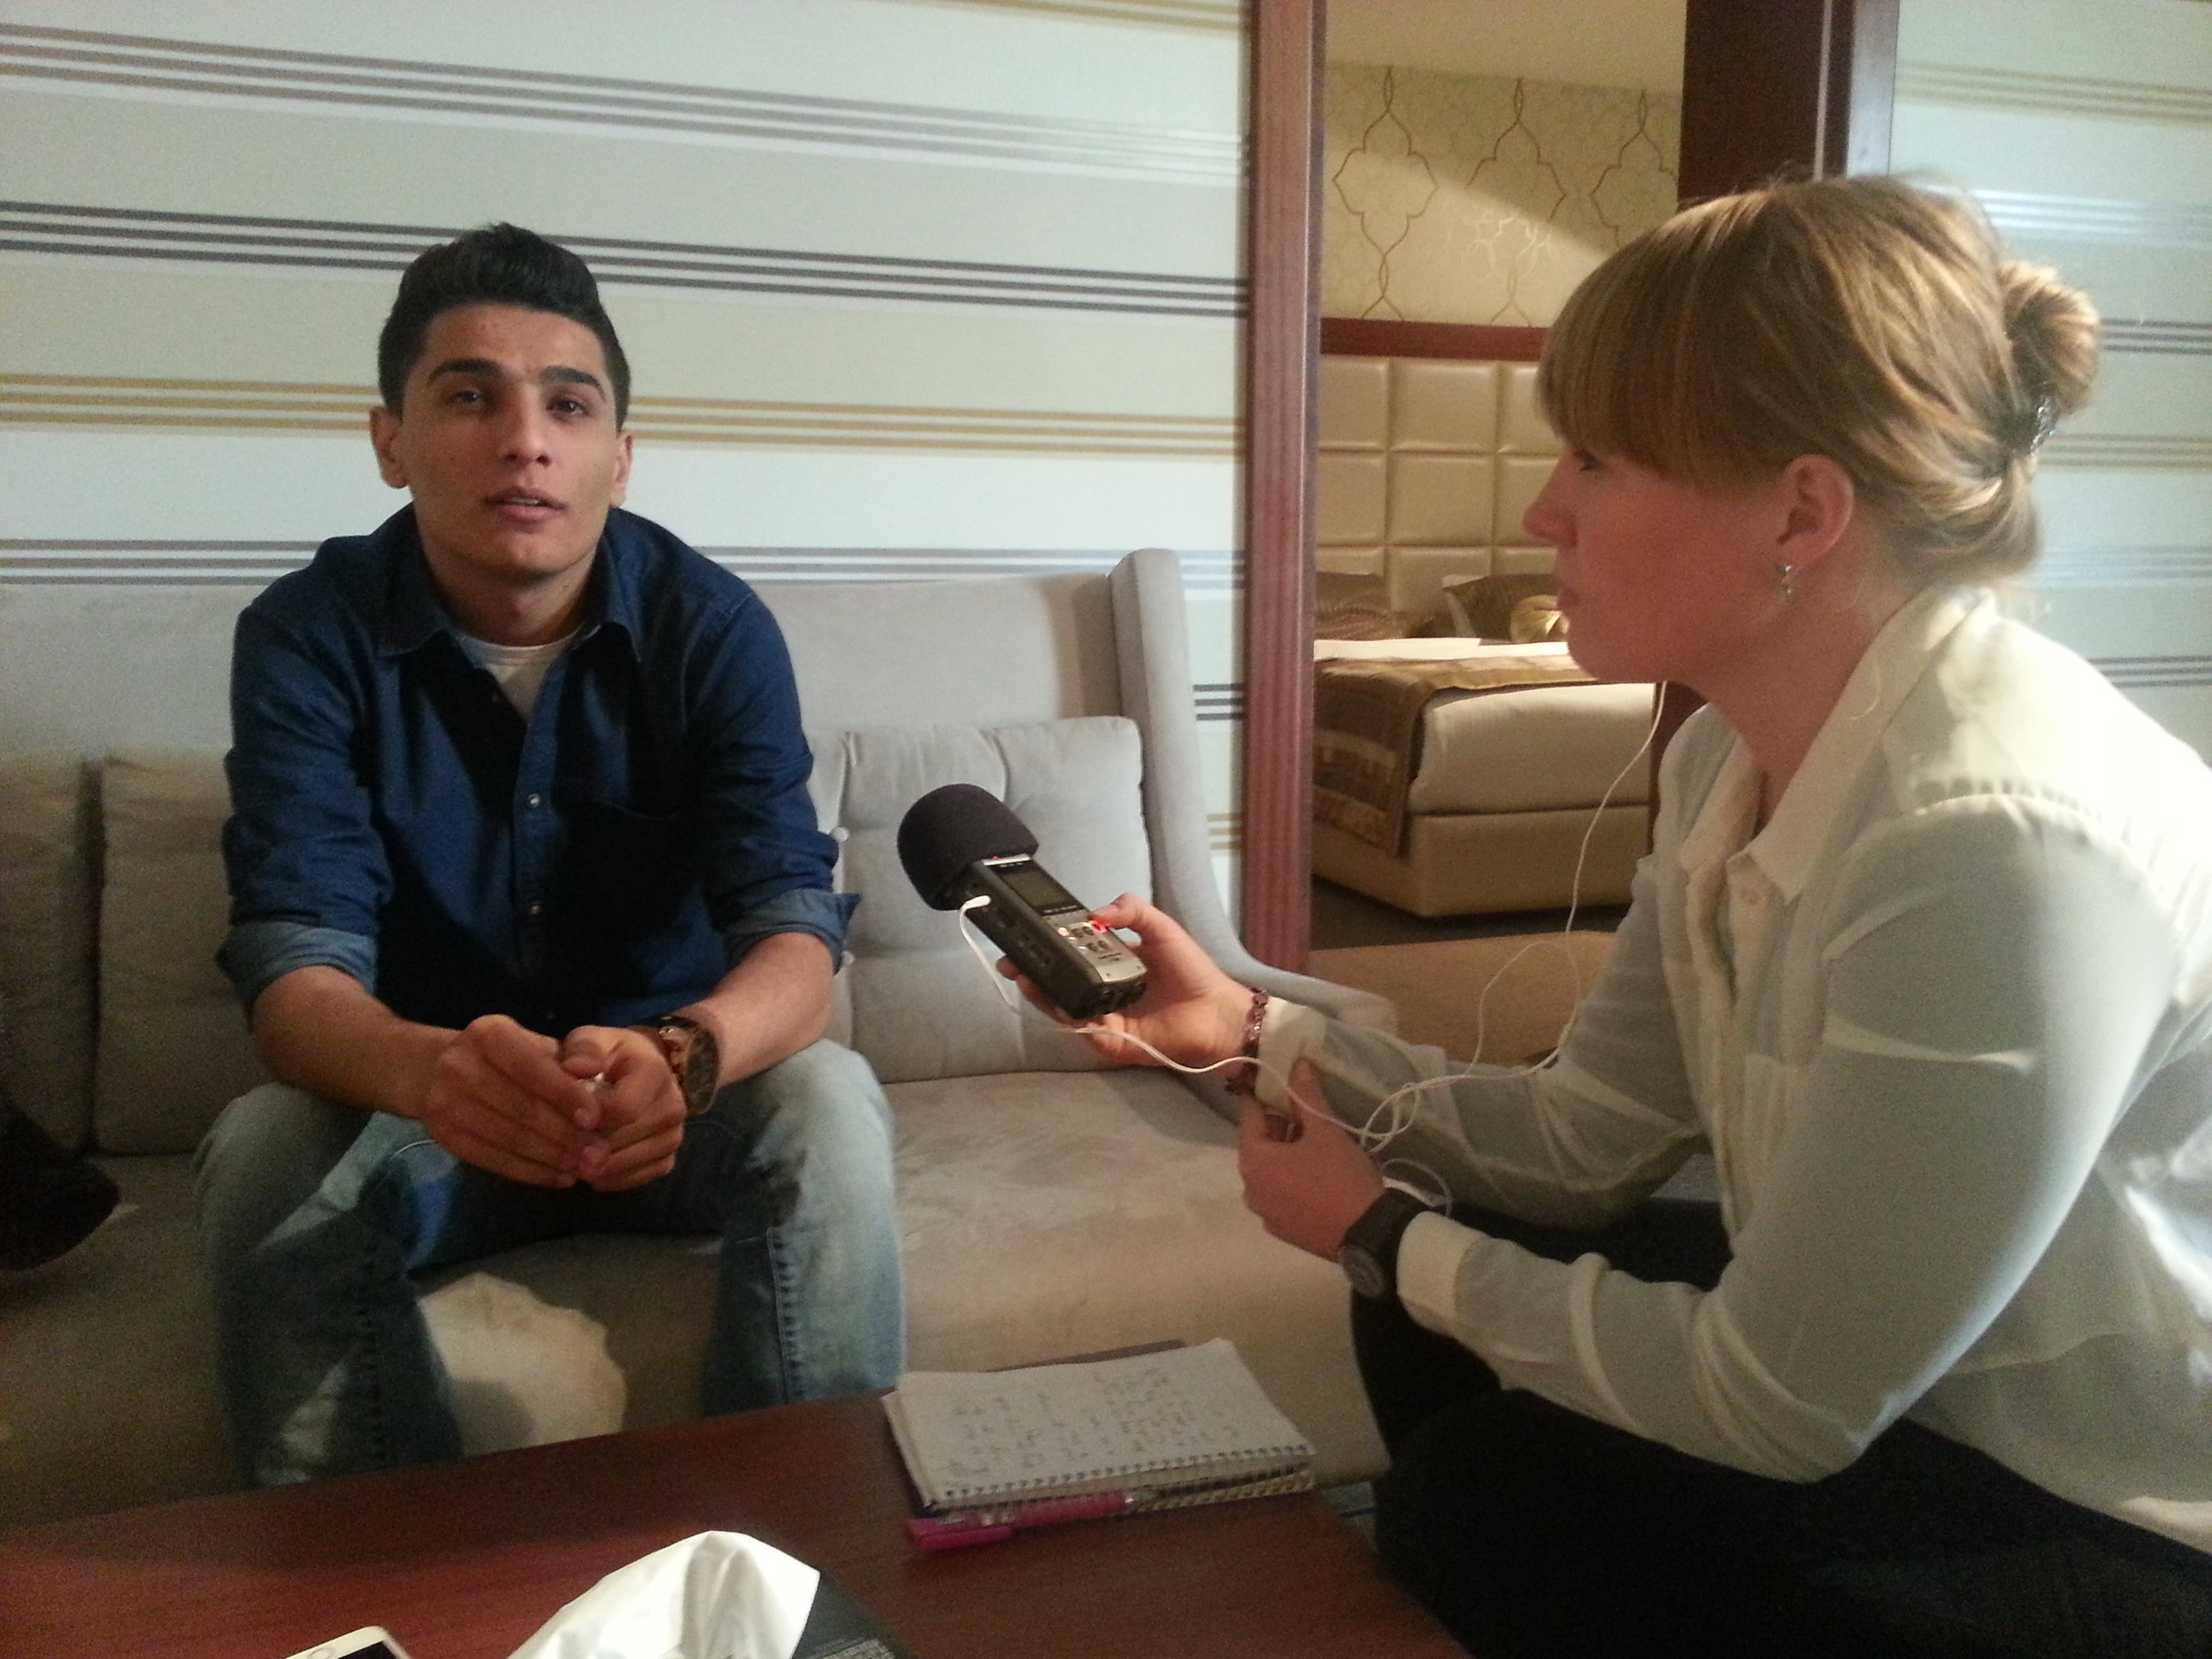 20140317 - Lena interviewing M Assaf - 1.jpg